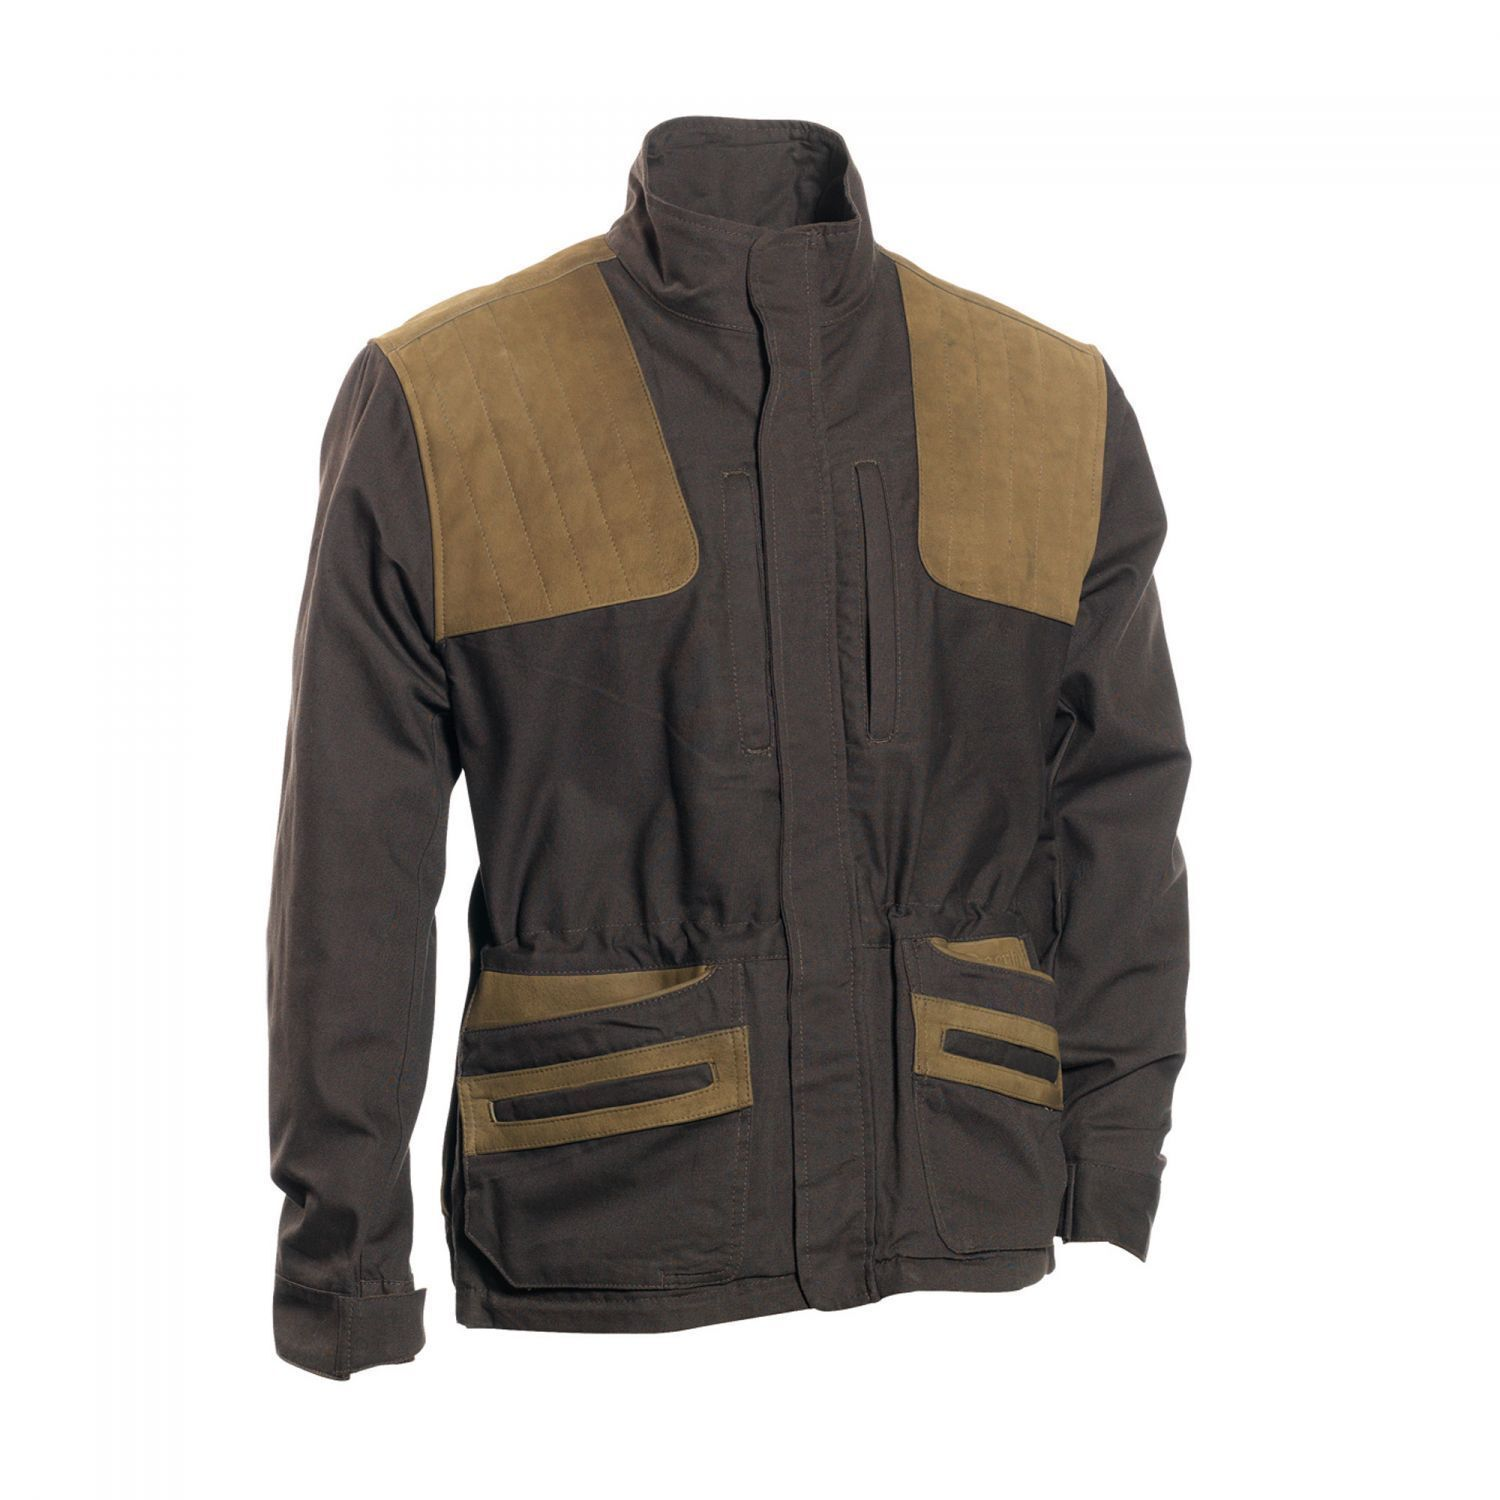 Deerhunter 5109  Monteria Hunting caza chaqueta  393-DH Timber, tamaño xl